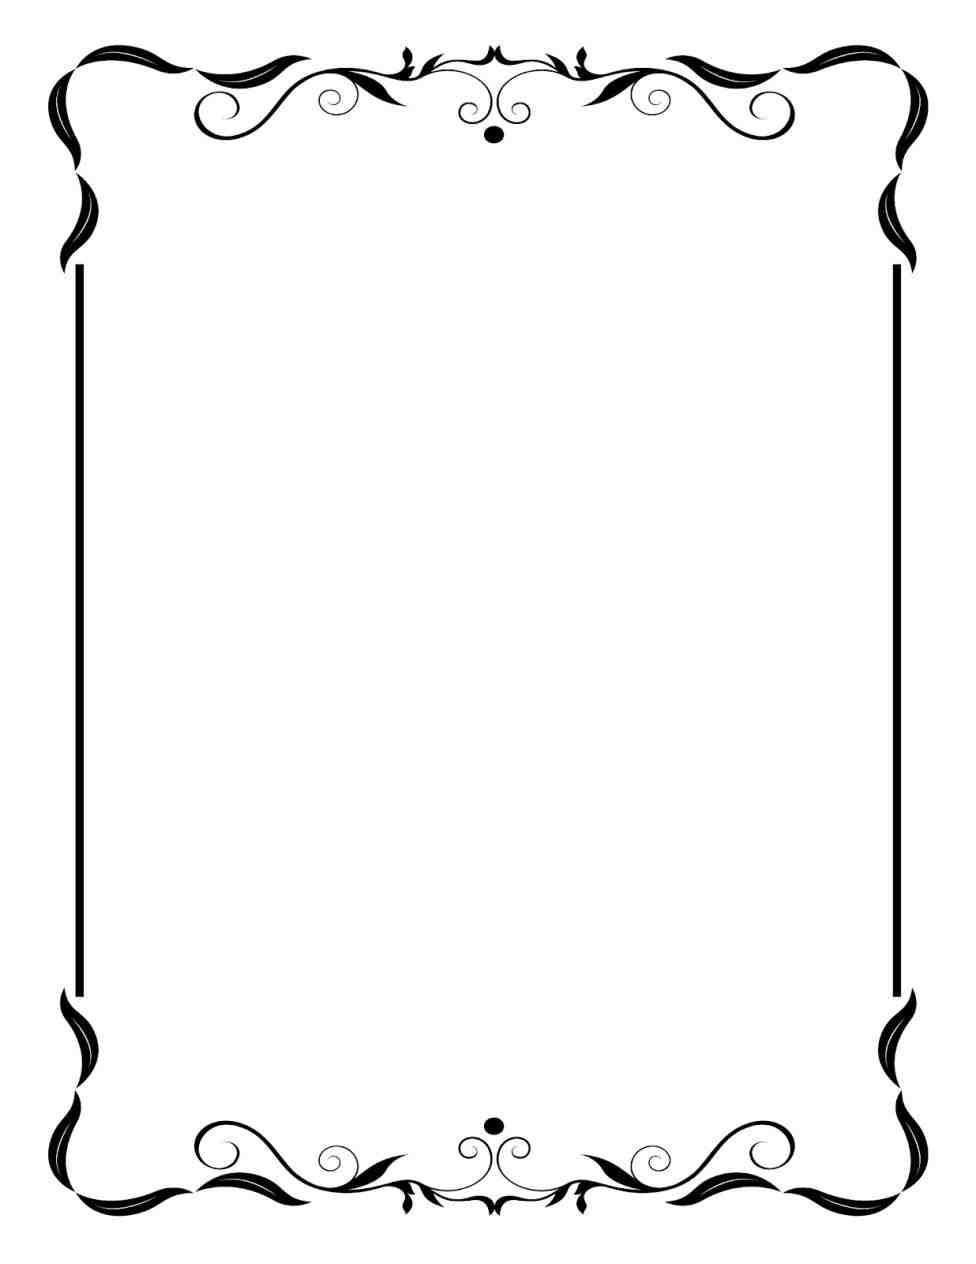 Website frame clipart vector library stock New Post-christmas border clipart black and white ... vector library stock